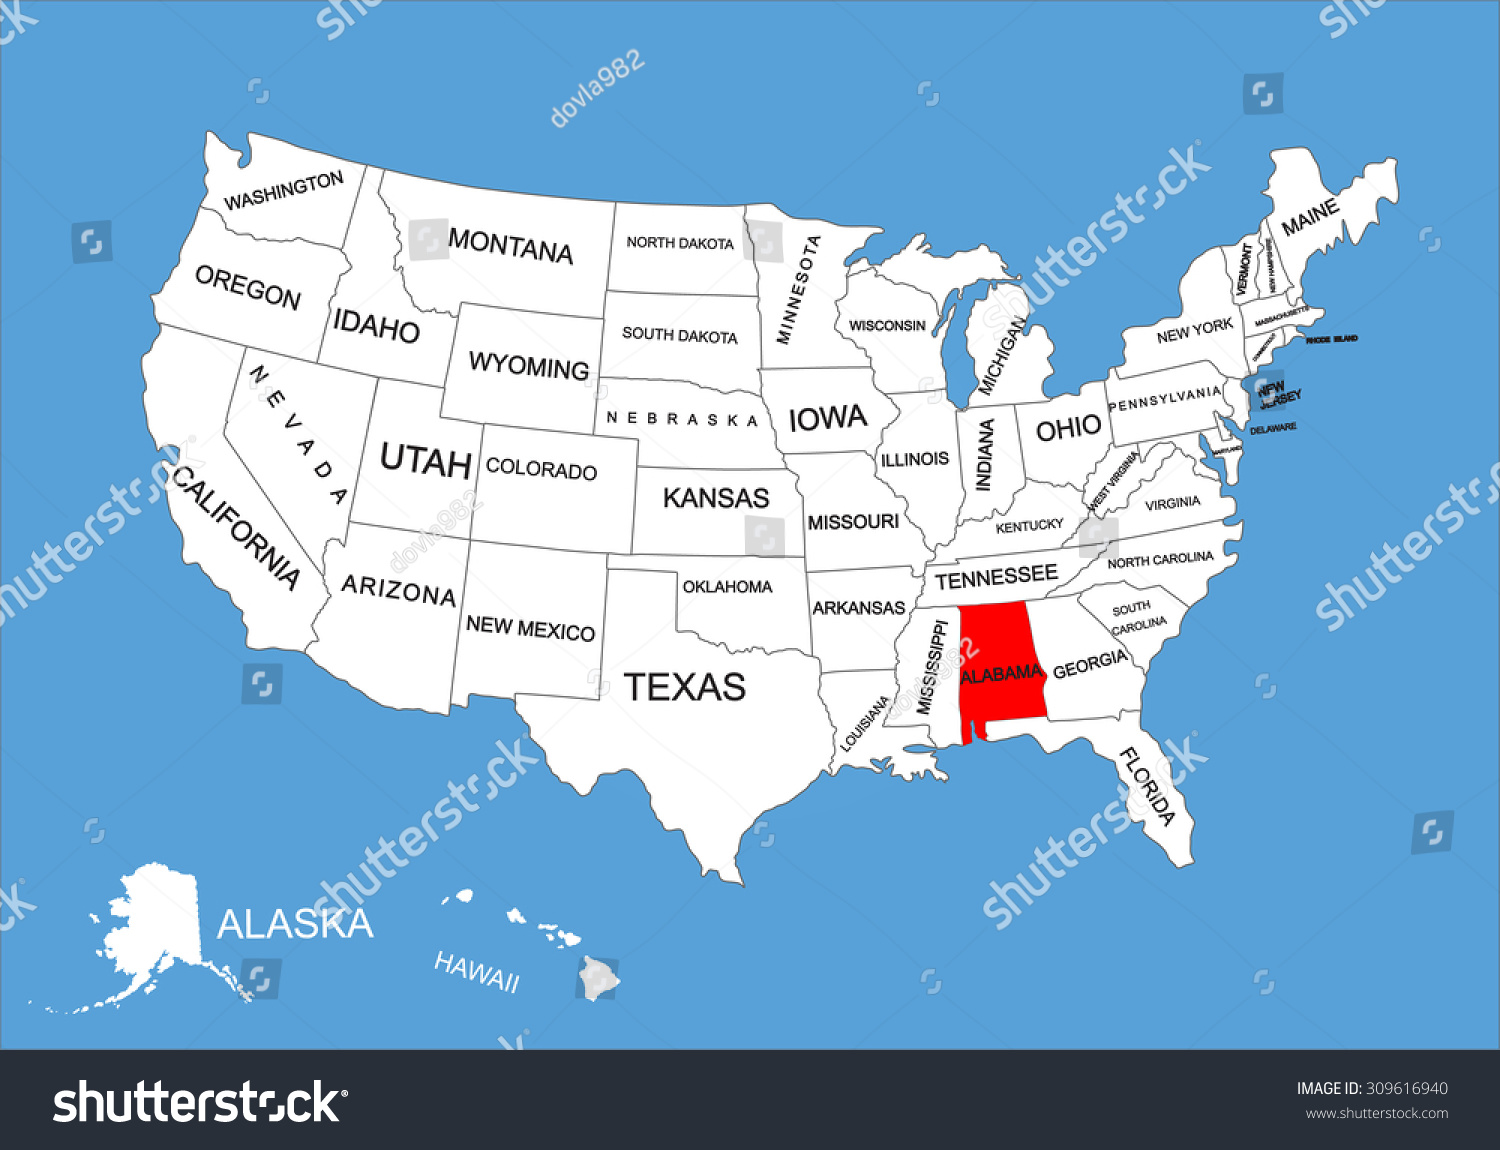 Alabama State Usa Vector Map Isolated Stock Vector - Us map alabama